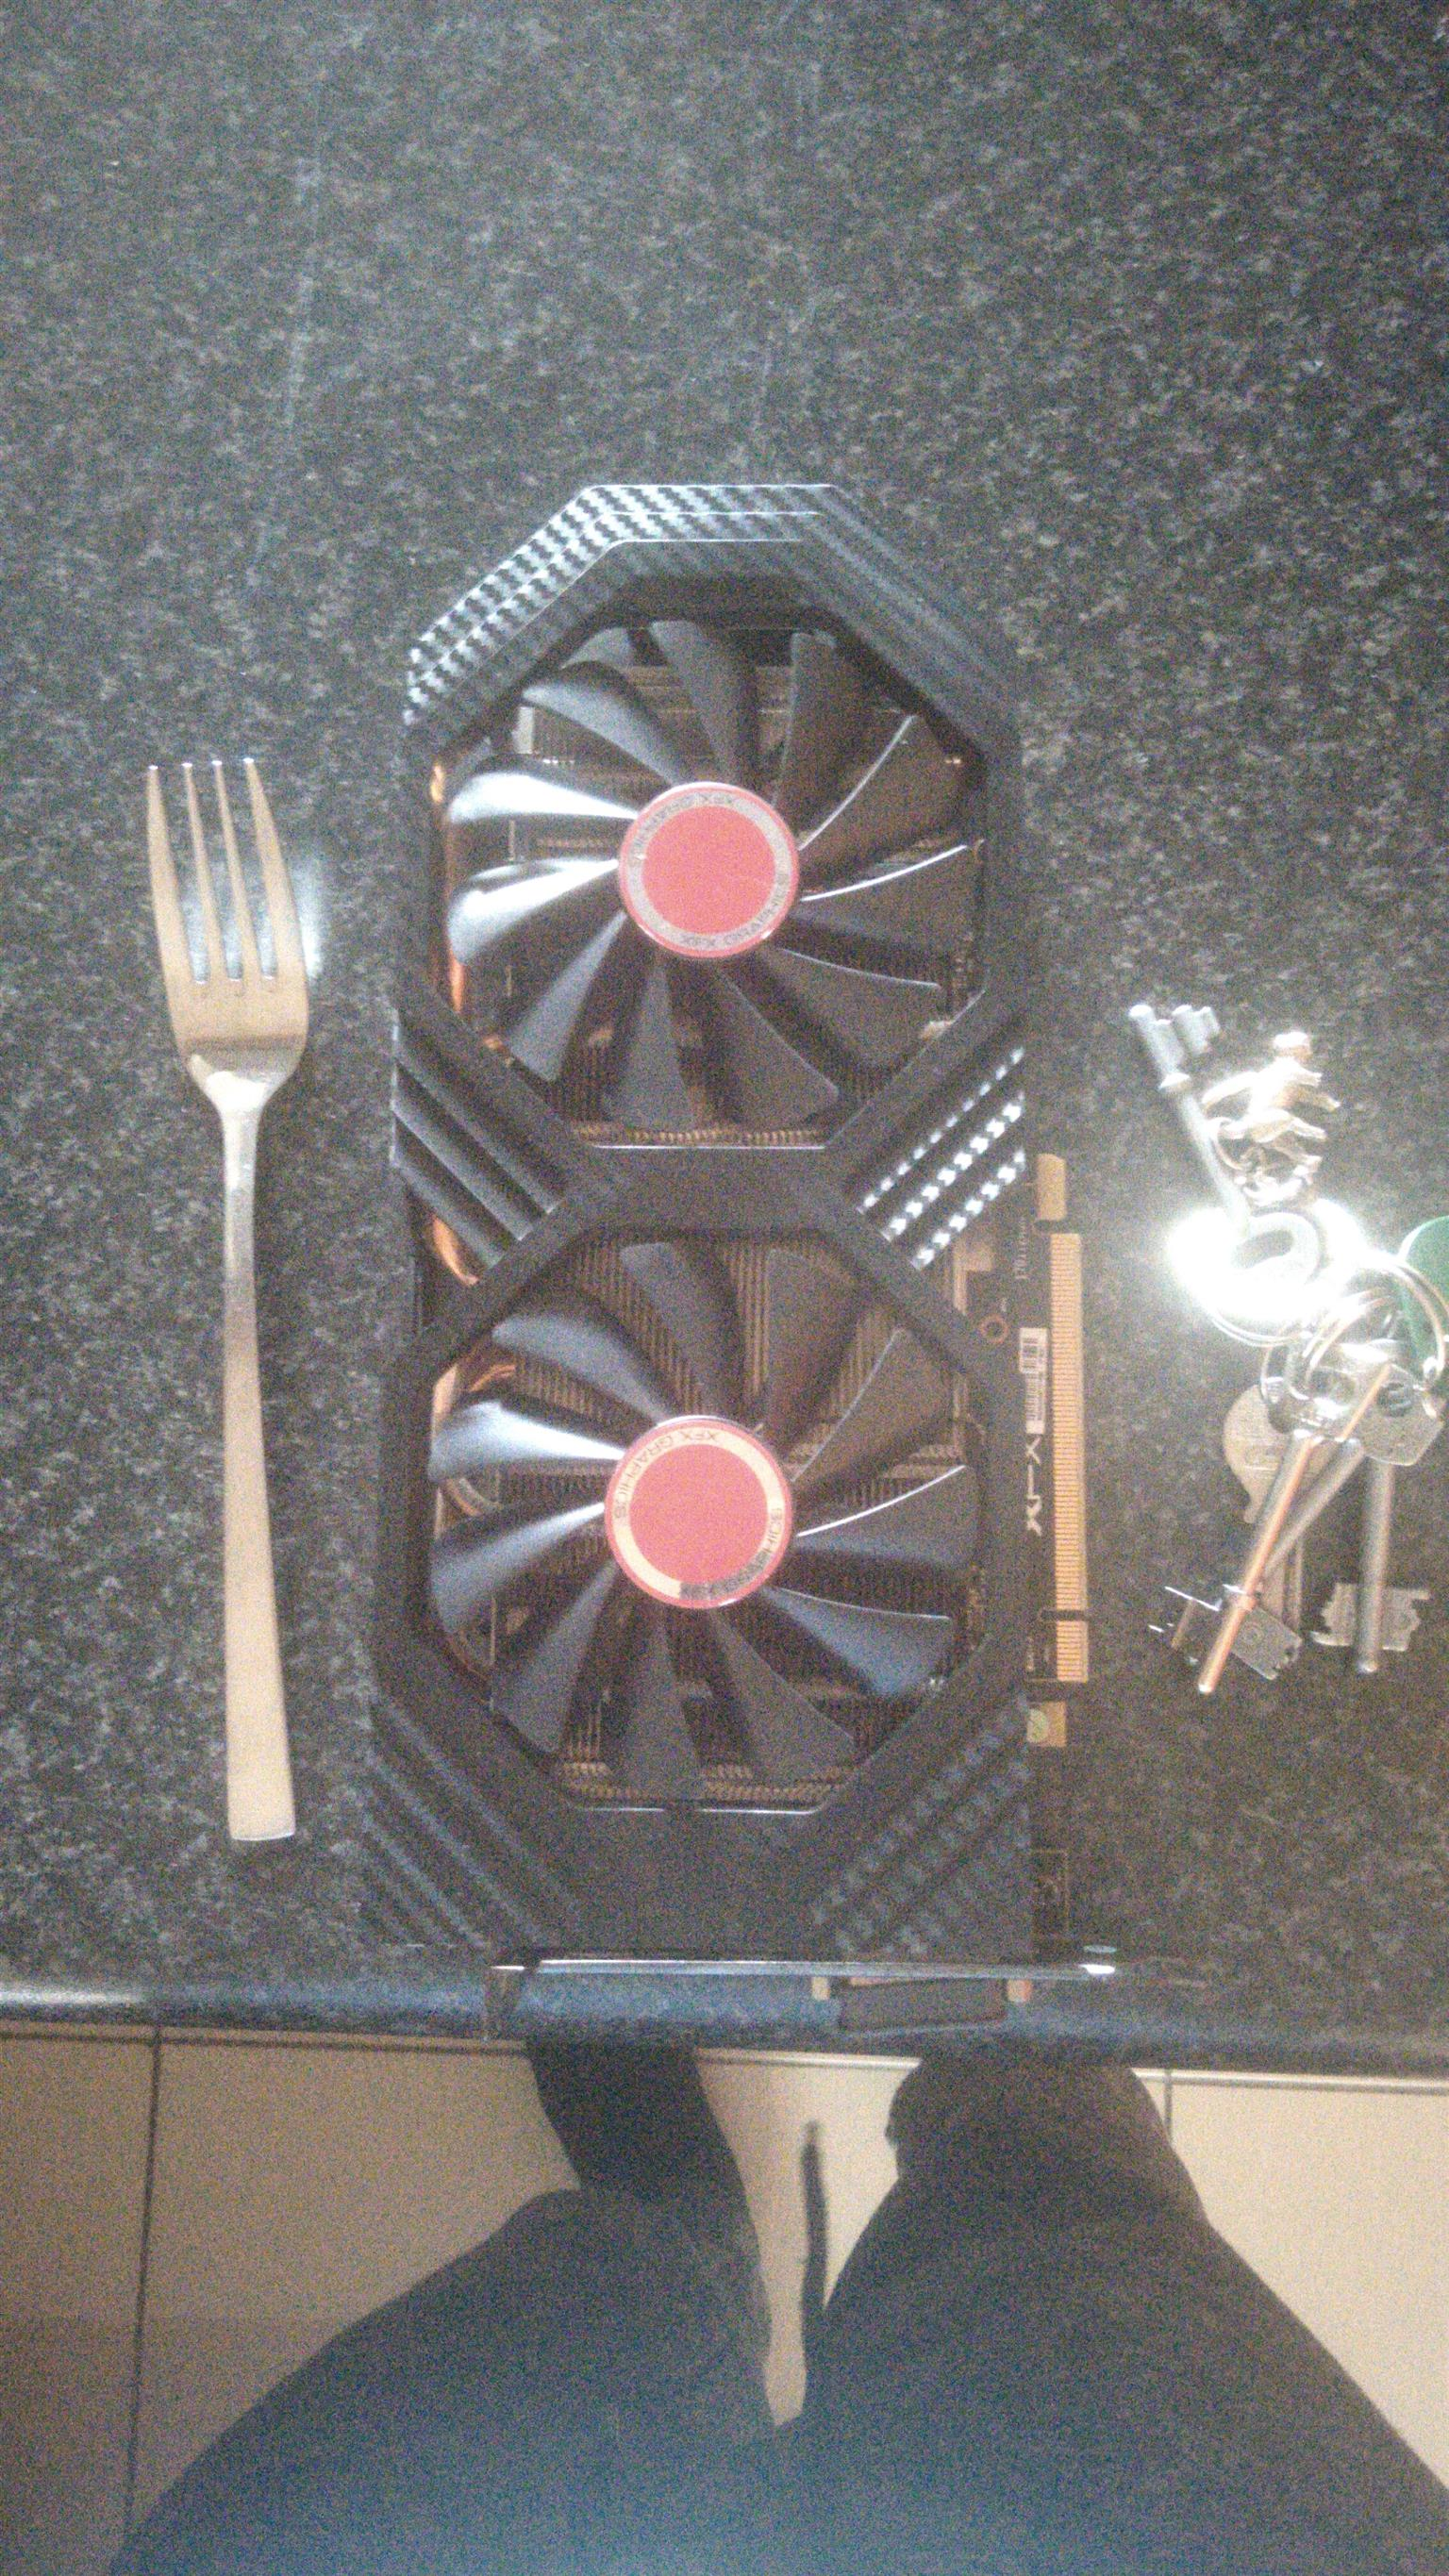 Rx580 8gb graphics cards for sale